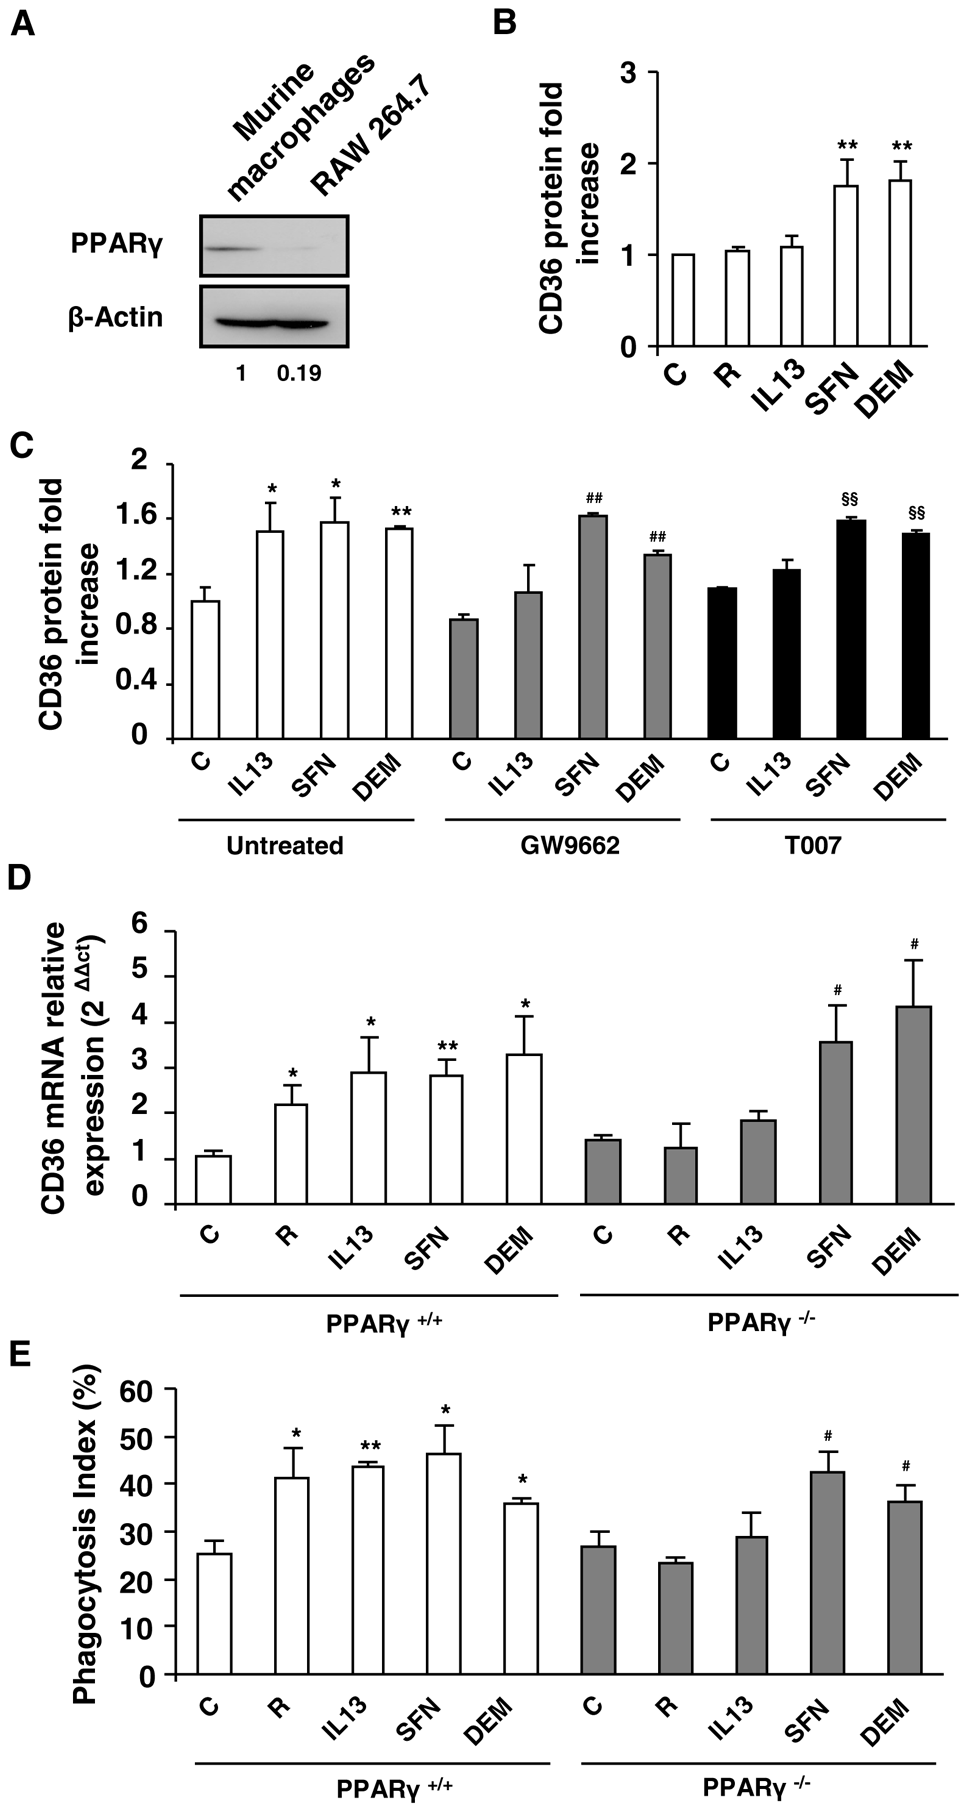 Nrf2 activators promote CD36 expression independently of PPARγ.